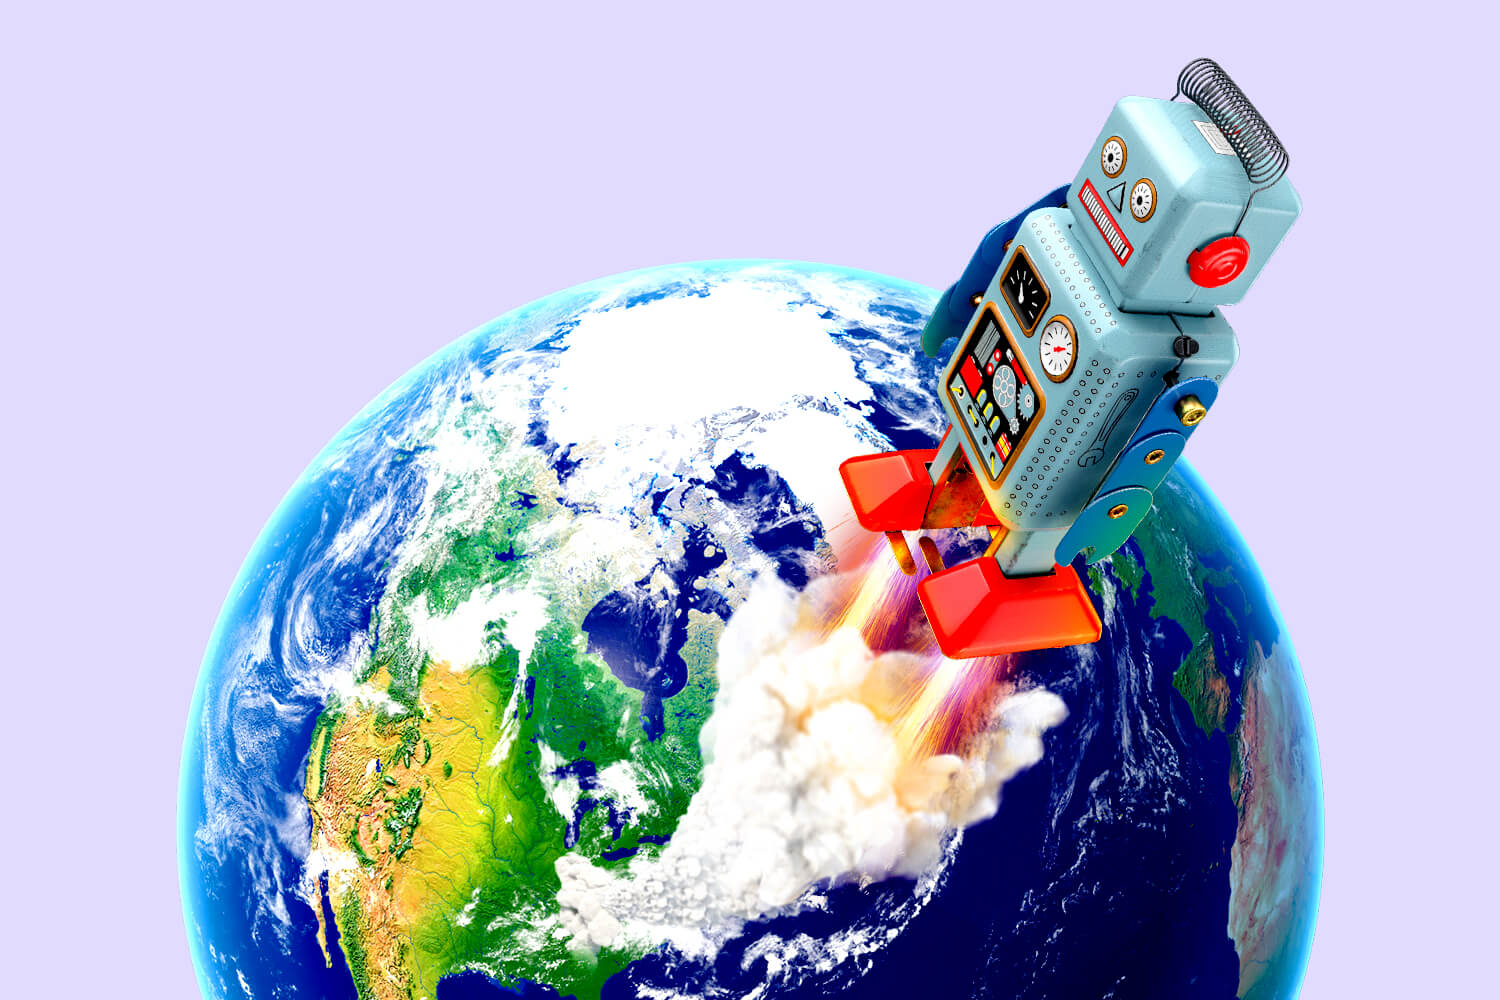 Robots are ridesharing rockets to space Francis Scialabba